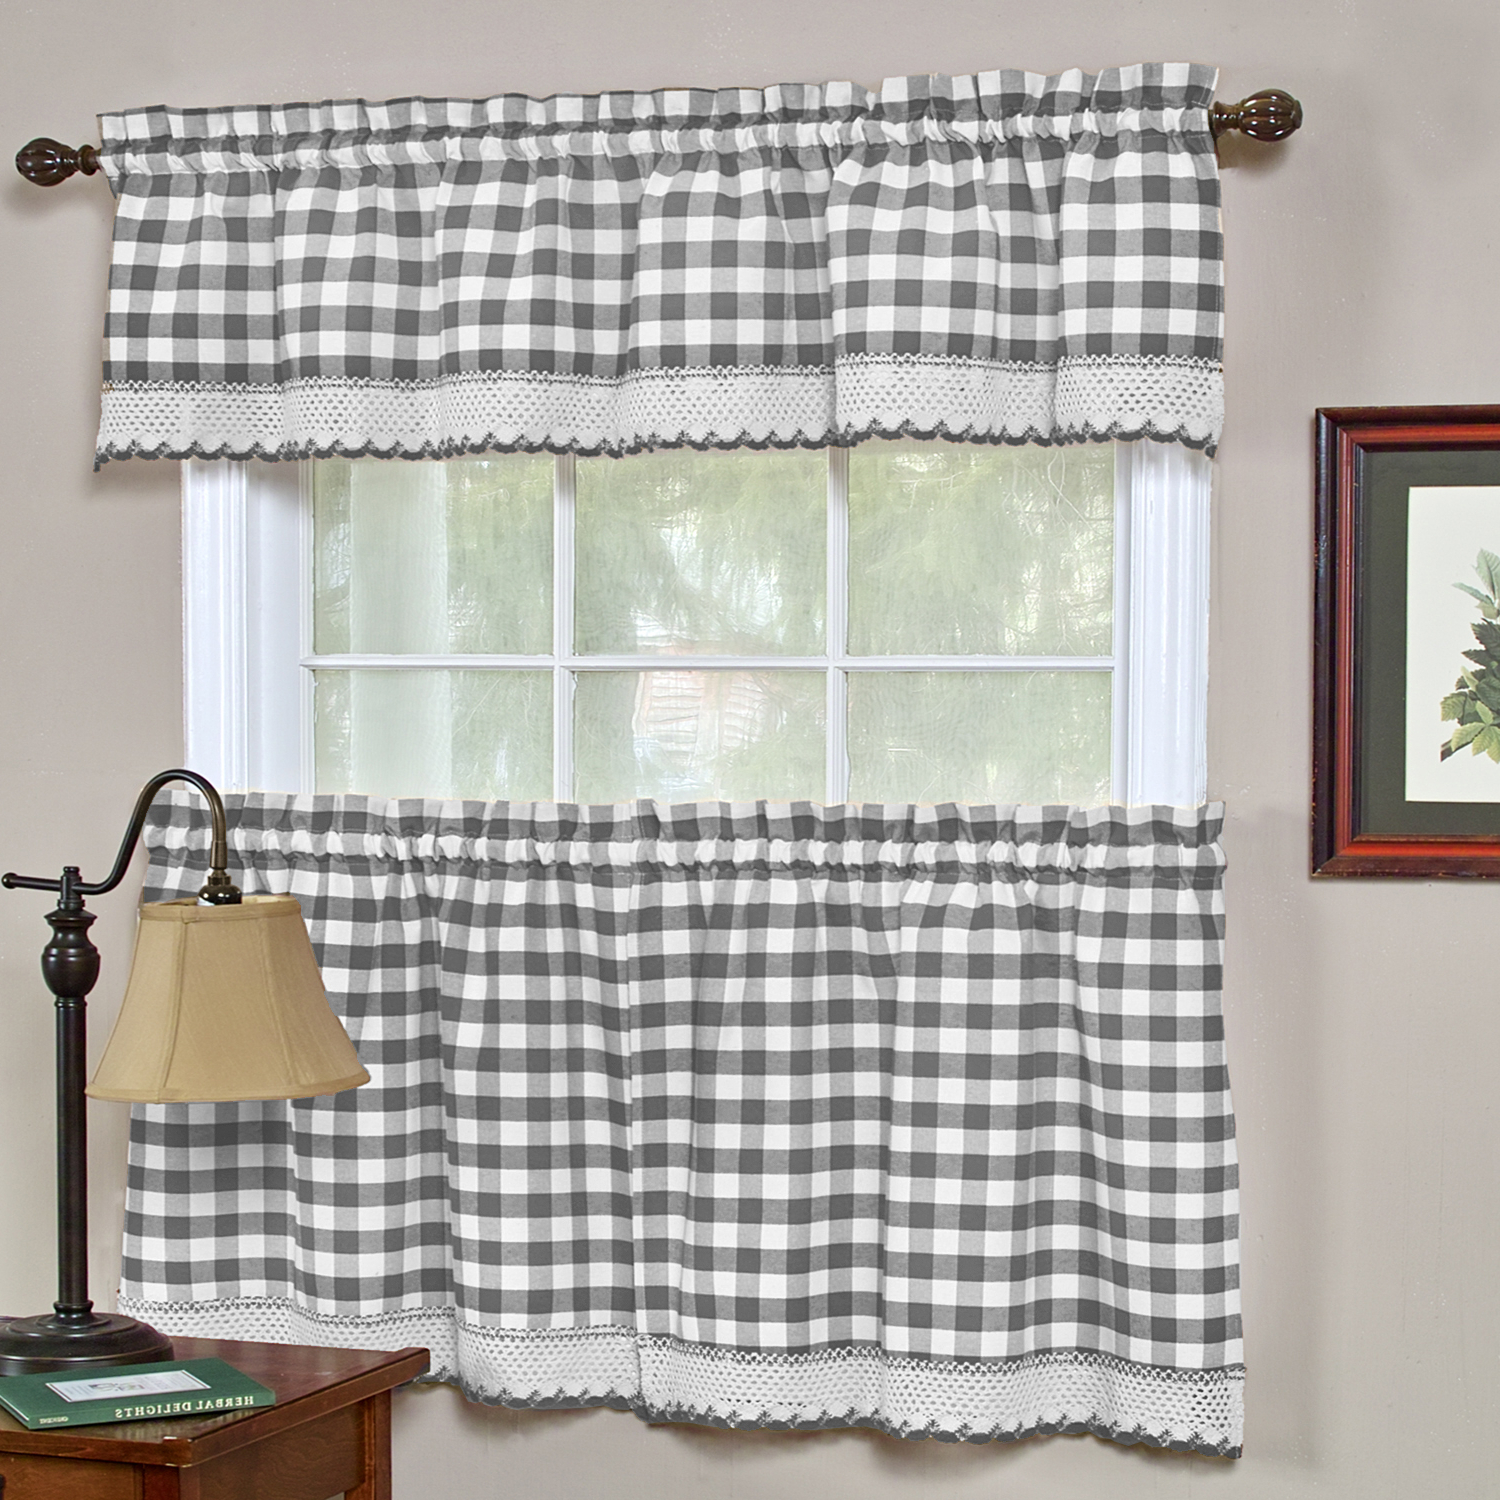 Details About Buffalo Check Gingham Kitchen Curtains Tiers Or Valance – Gray Throughout Recent Cotton Blend Classic Checkered Decorative Window Curtains (View 12 of 20)